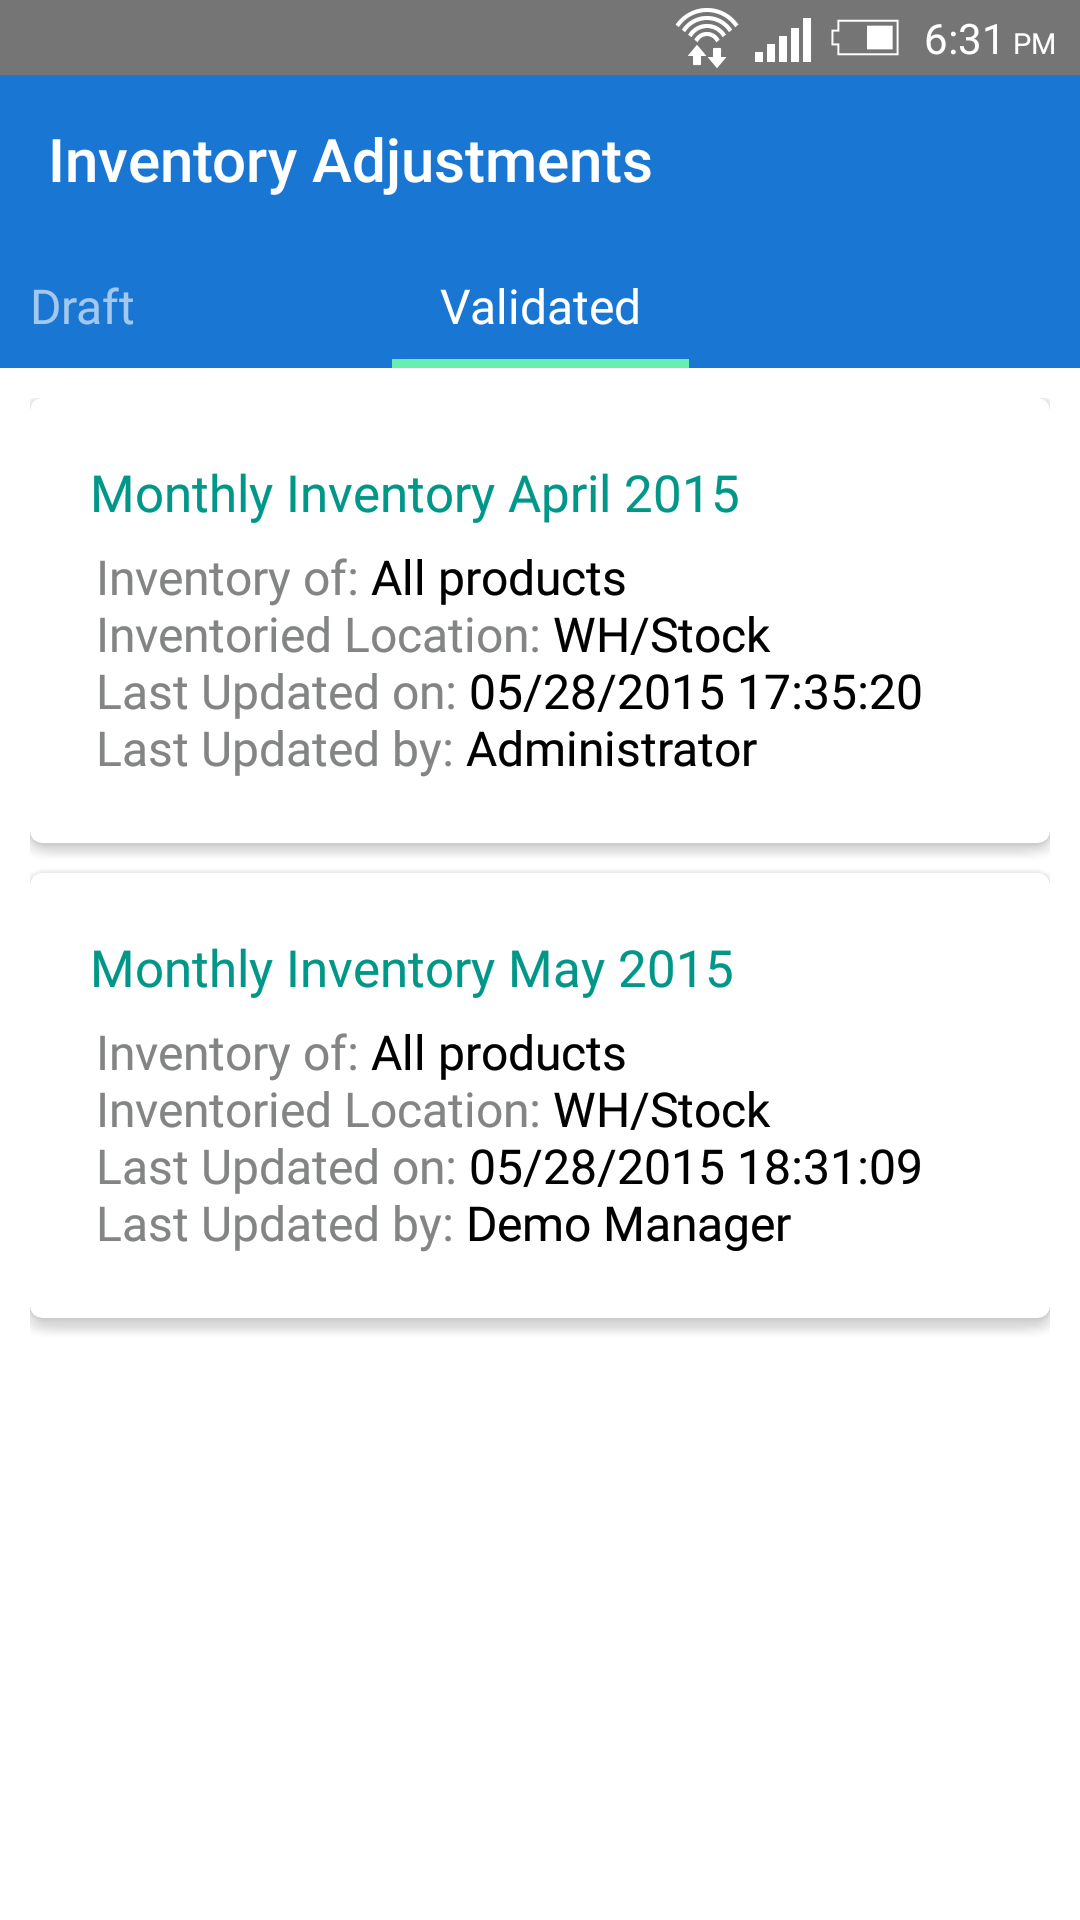 mERP_Warehouse_Inventory